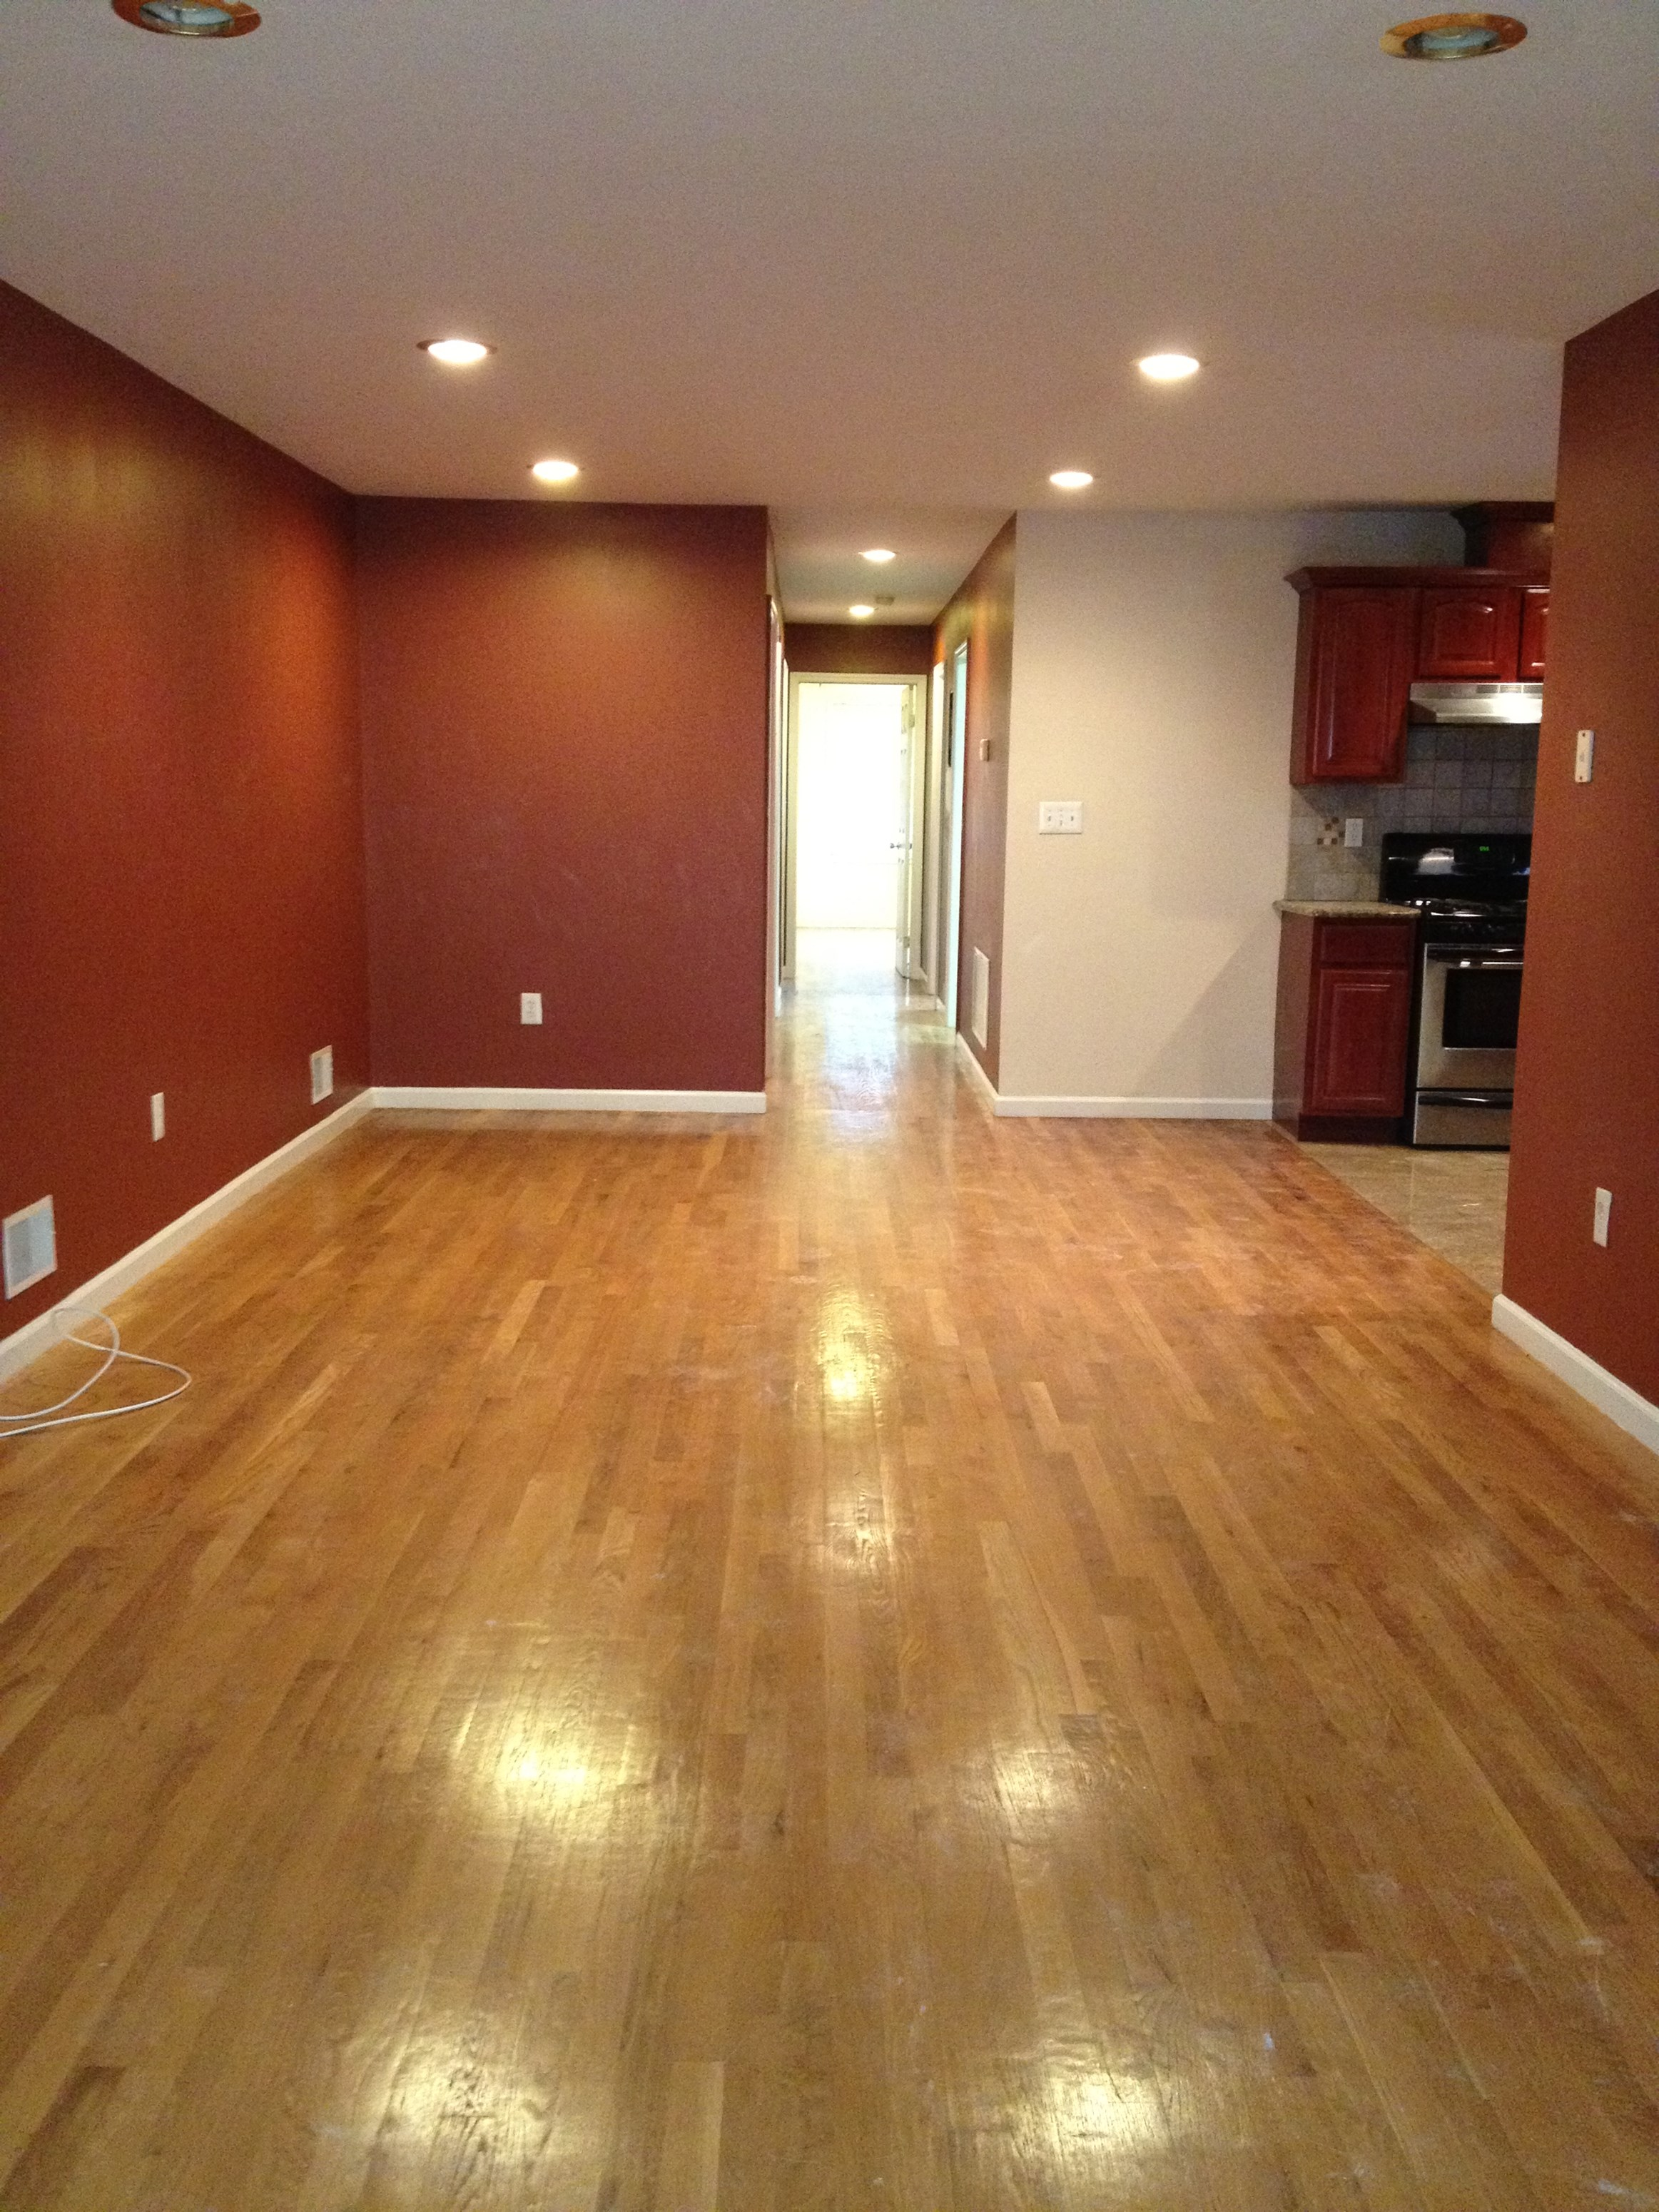 Commercial Kitchen Space For Rent Nj